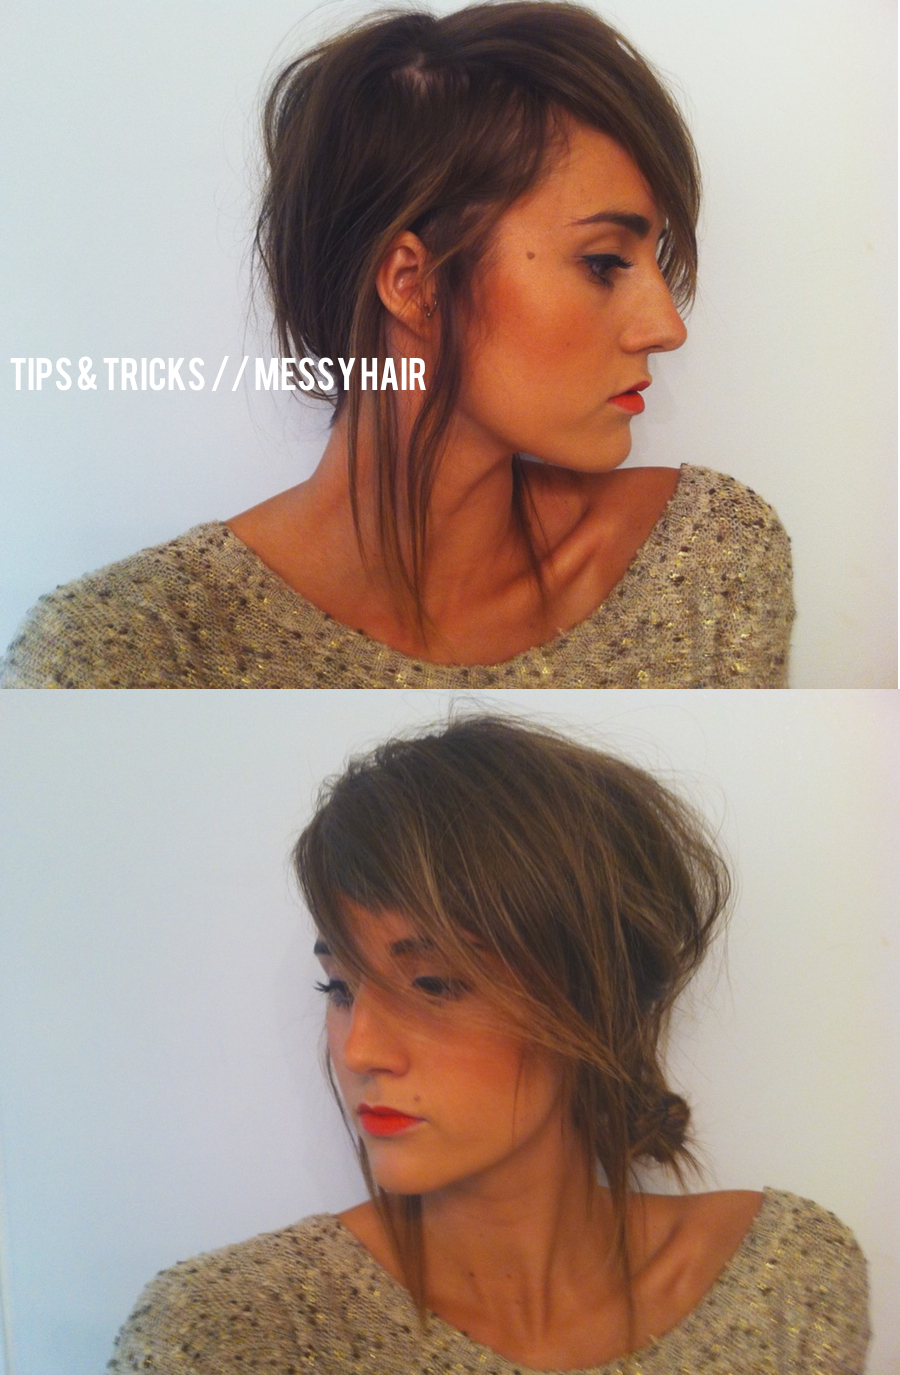 Tips&tricks::messyhair.jpg